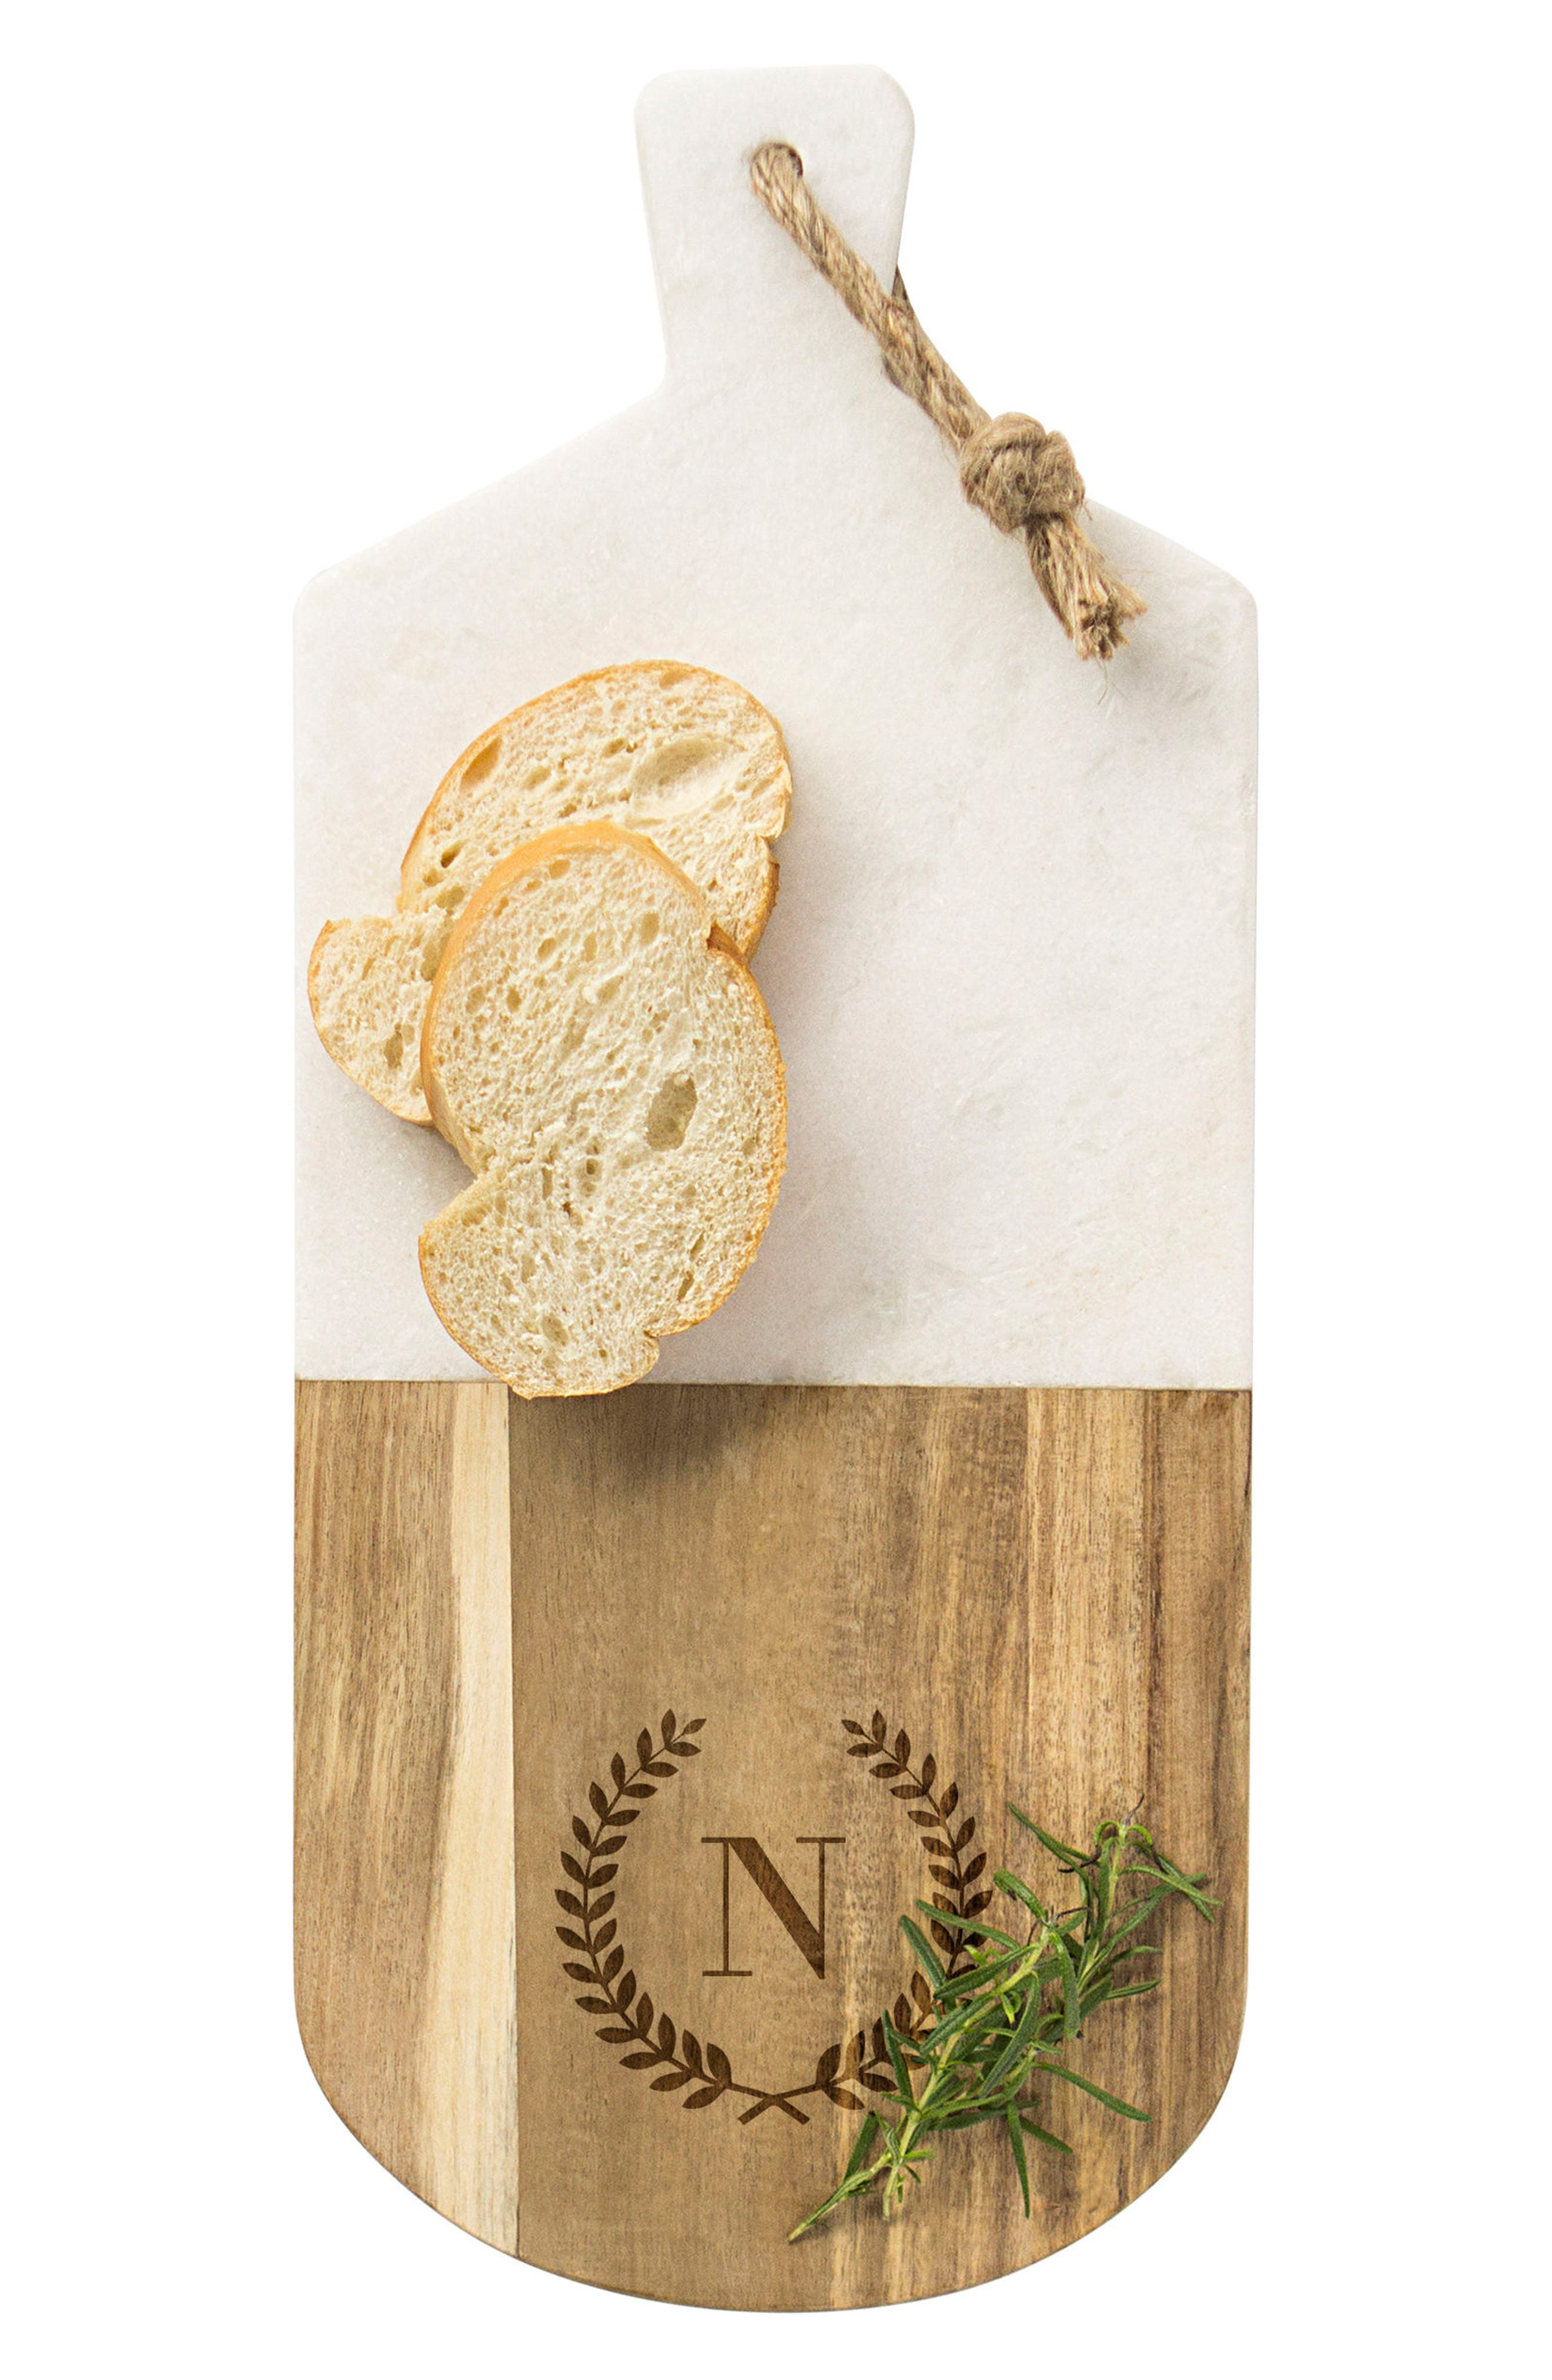 Cathy's Concepts Monogram Marble & Wood Serving Board